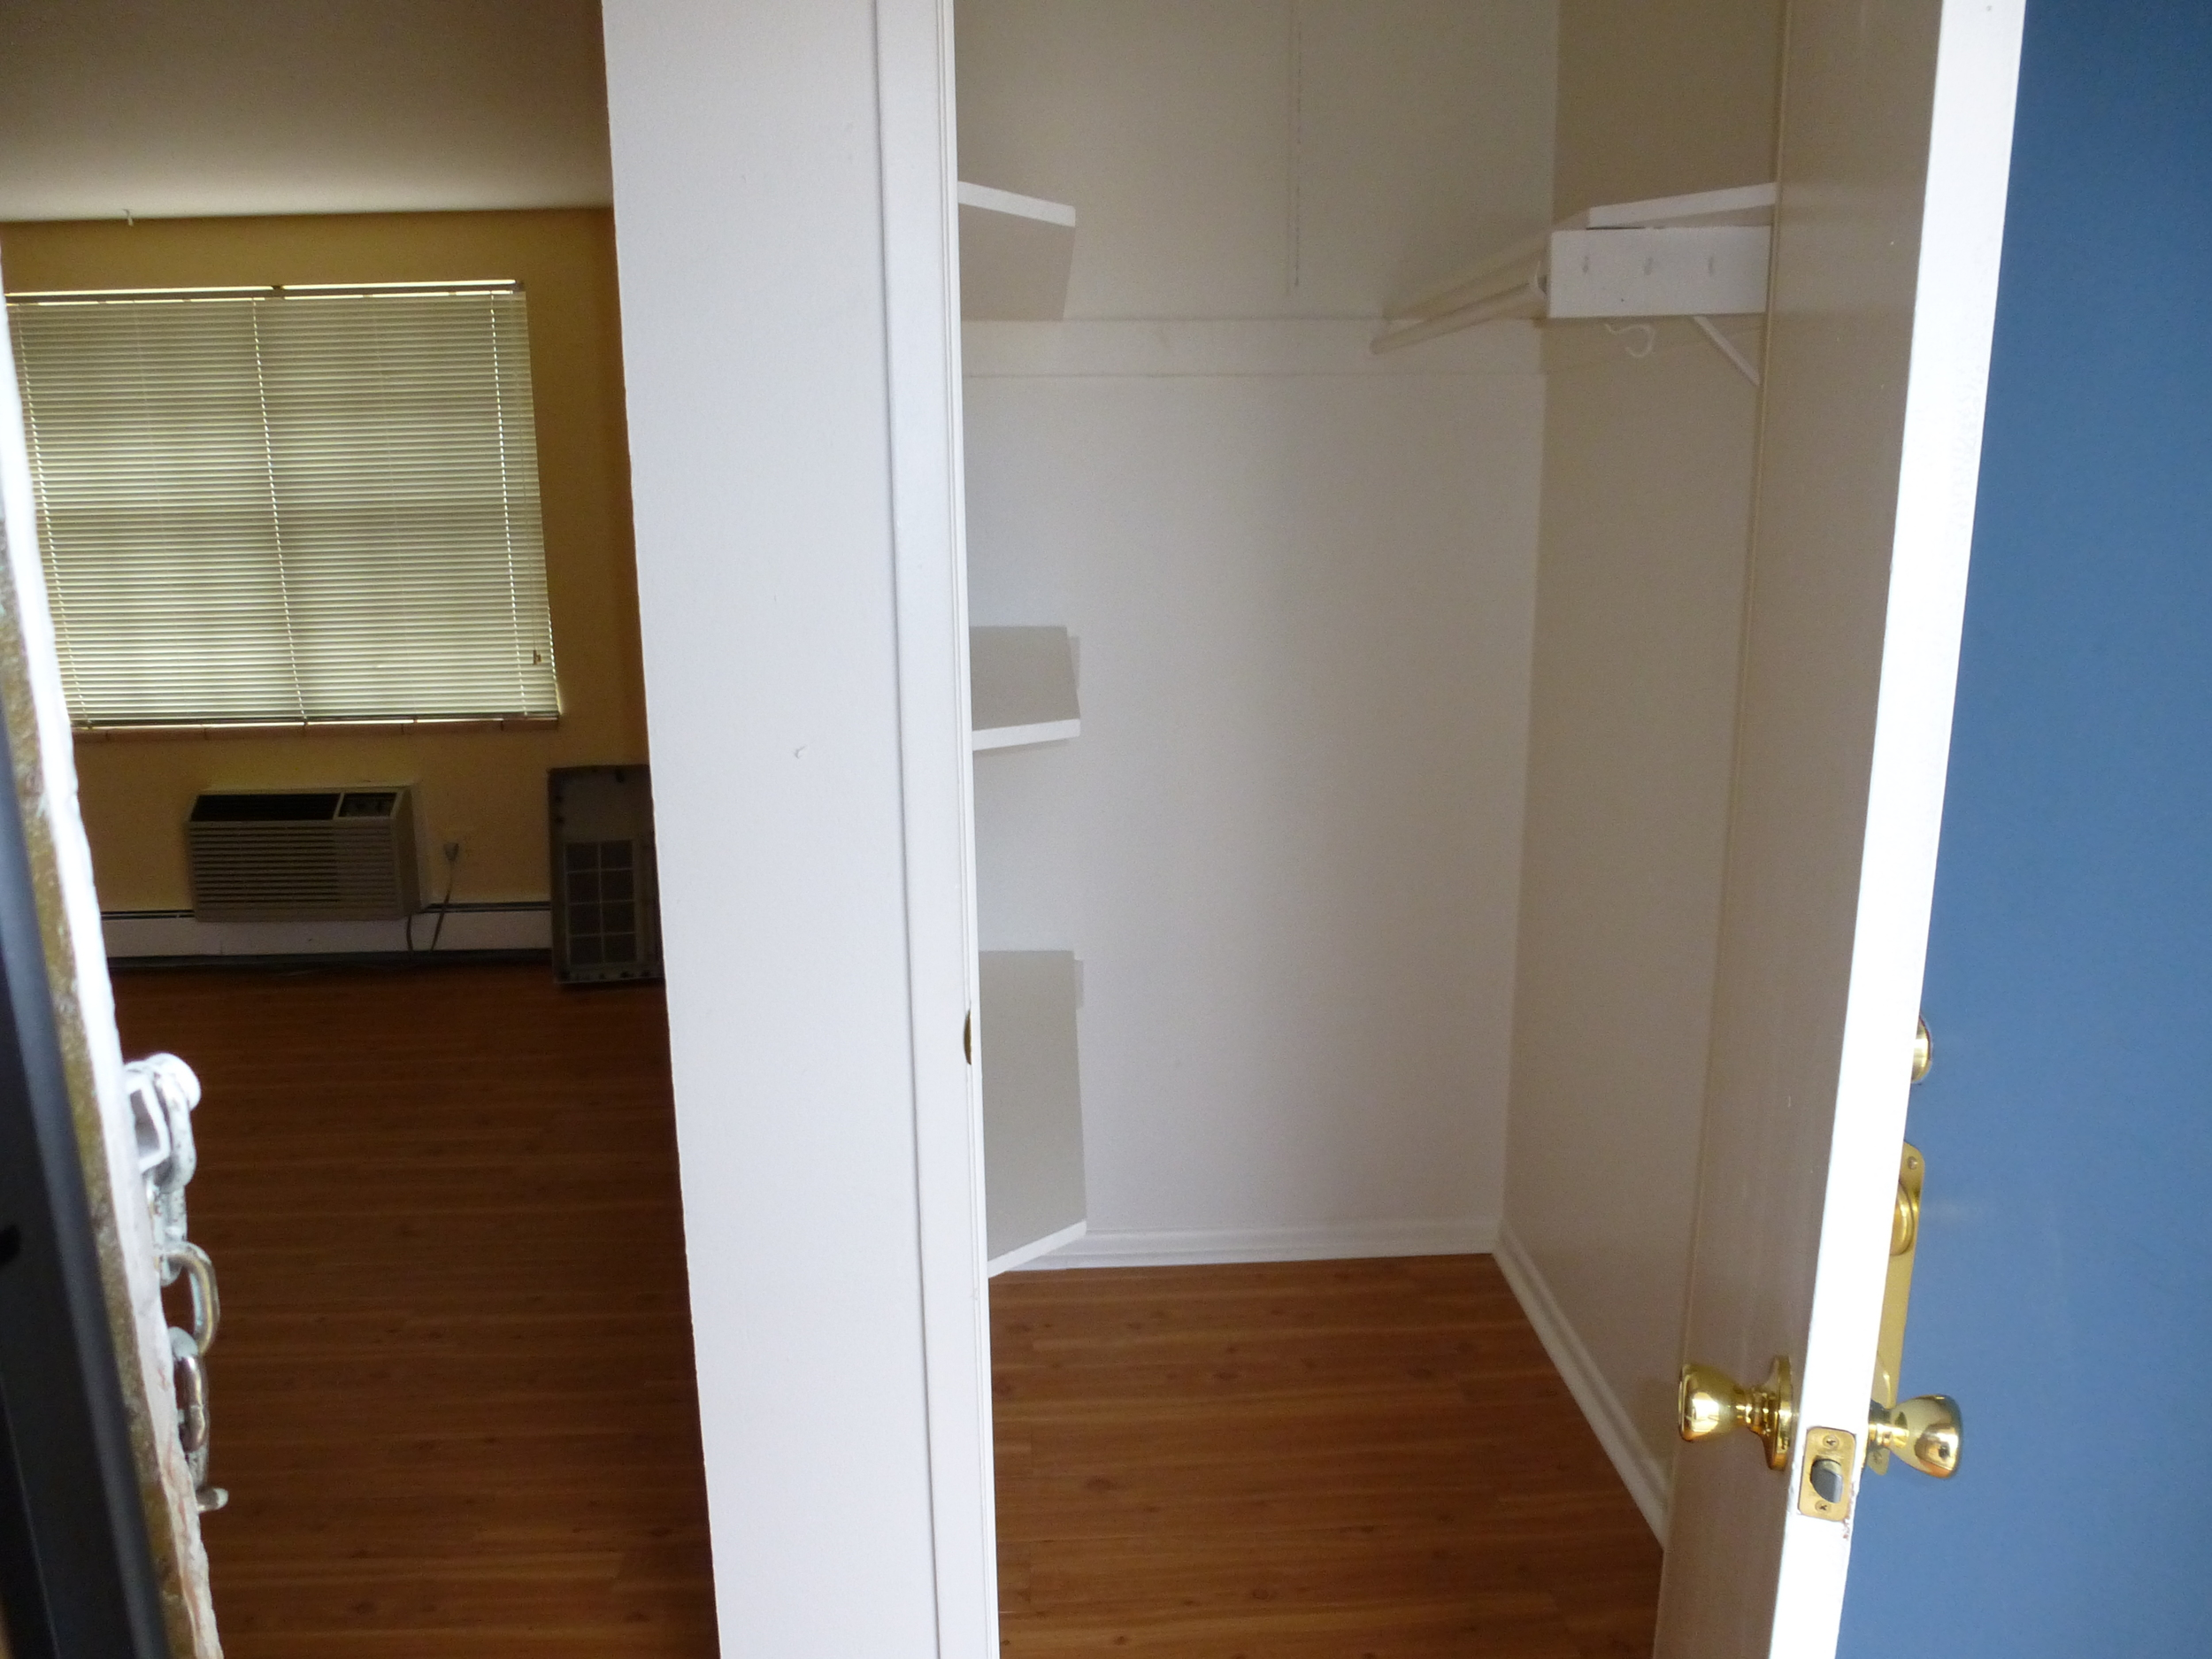 cc end unit walk-in closet.JPG